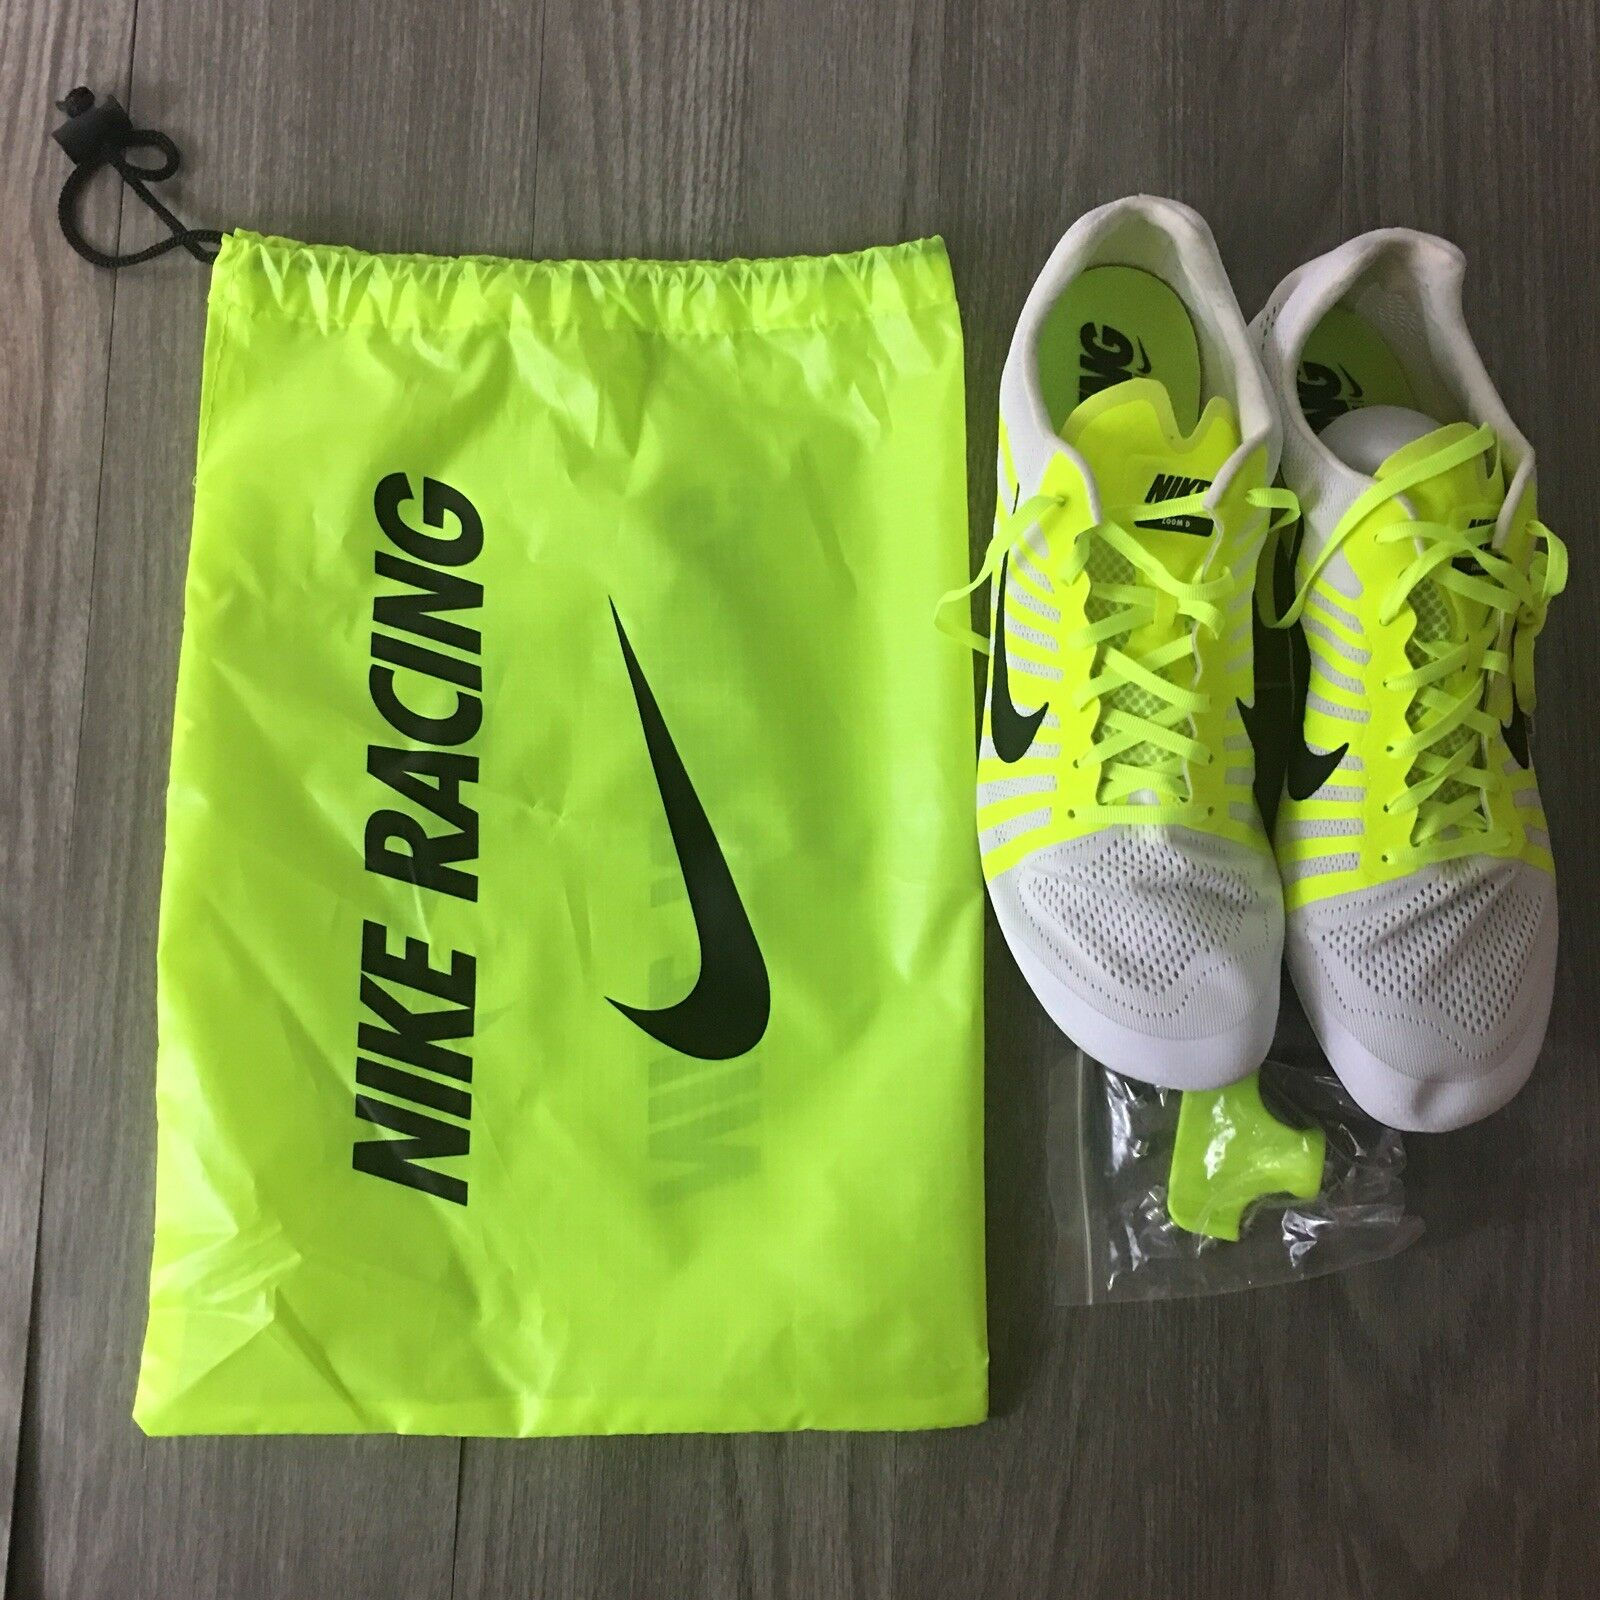 New Nike Mens zoom distance track and field cleats cleats cleats 819164-107 Men's size 14 2089fb